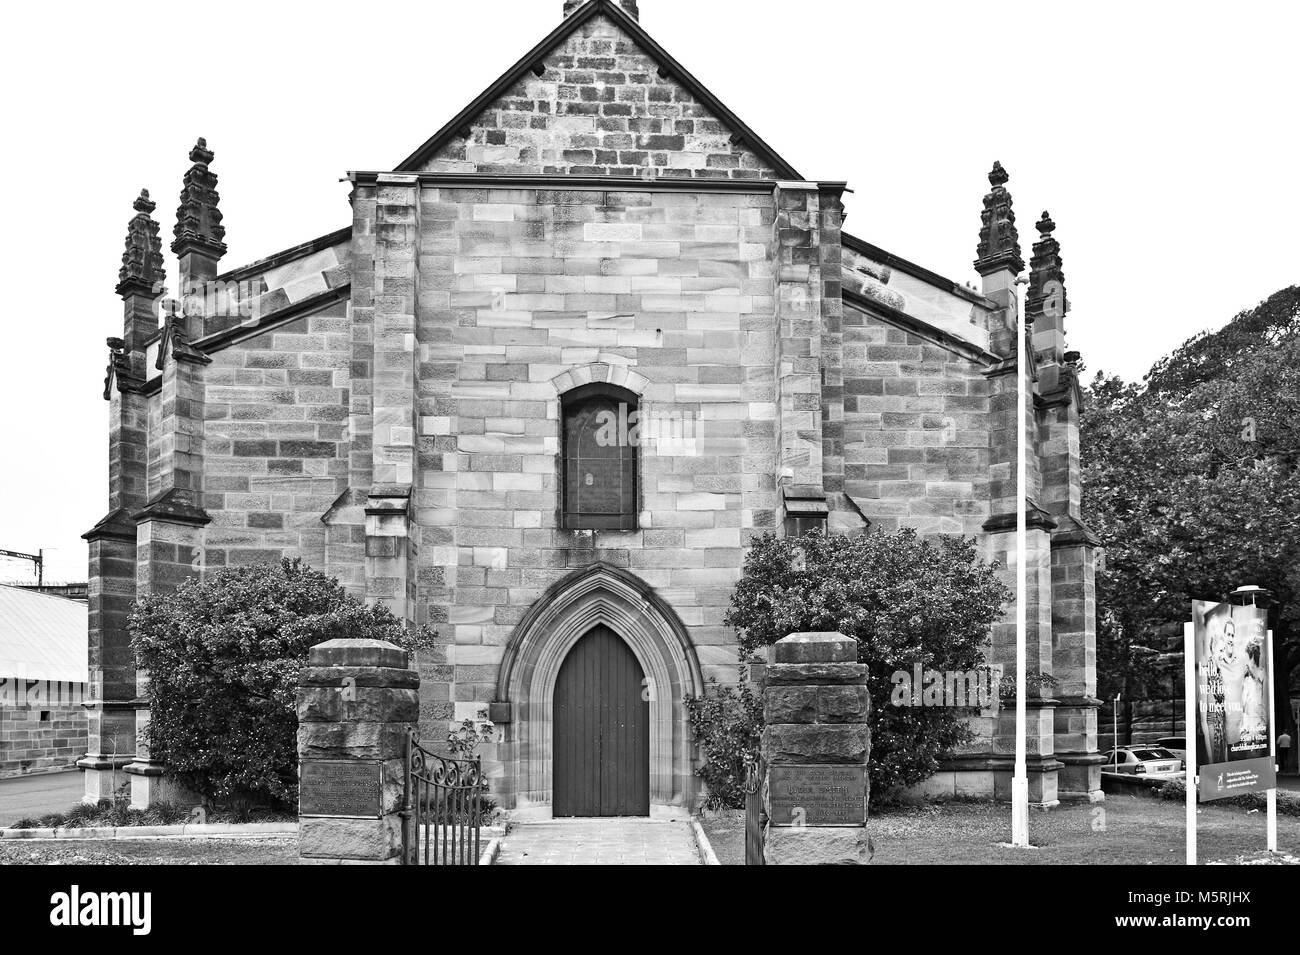 The Garrison Anglican Church also known as Holy Trinity. Millers Point. AUSTRALIA - Stock Image